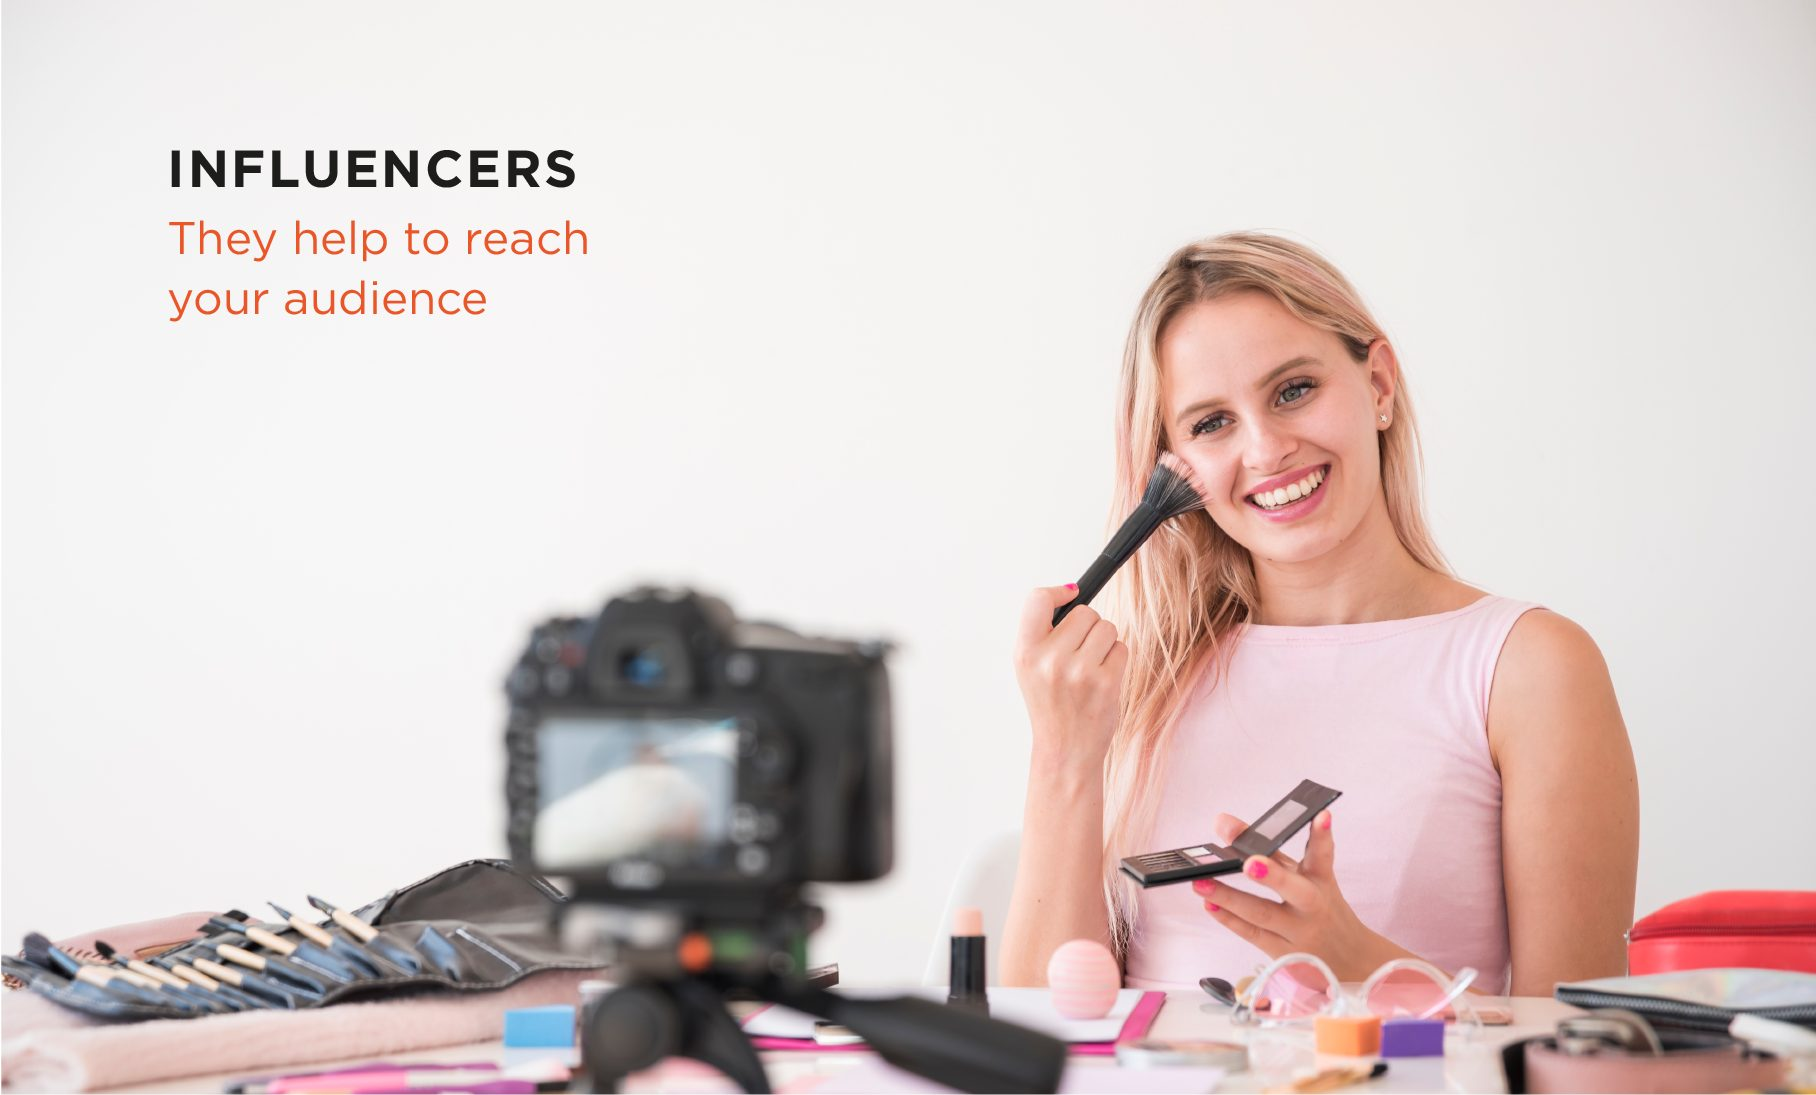 Link up with influencers in your market